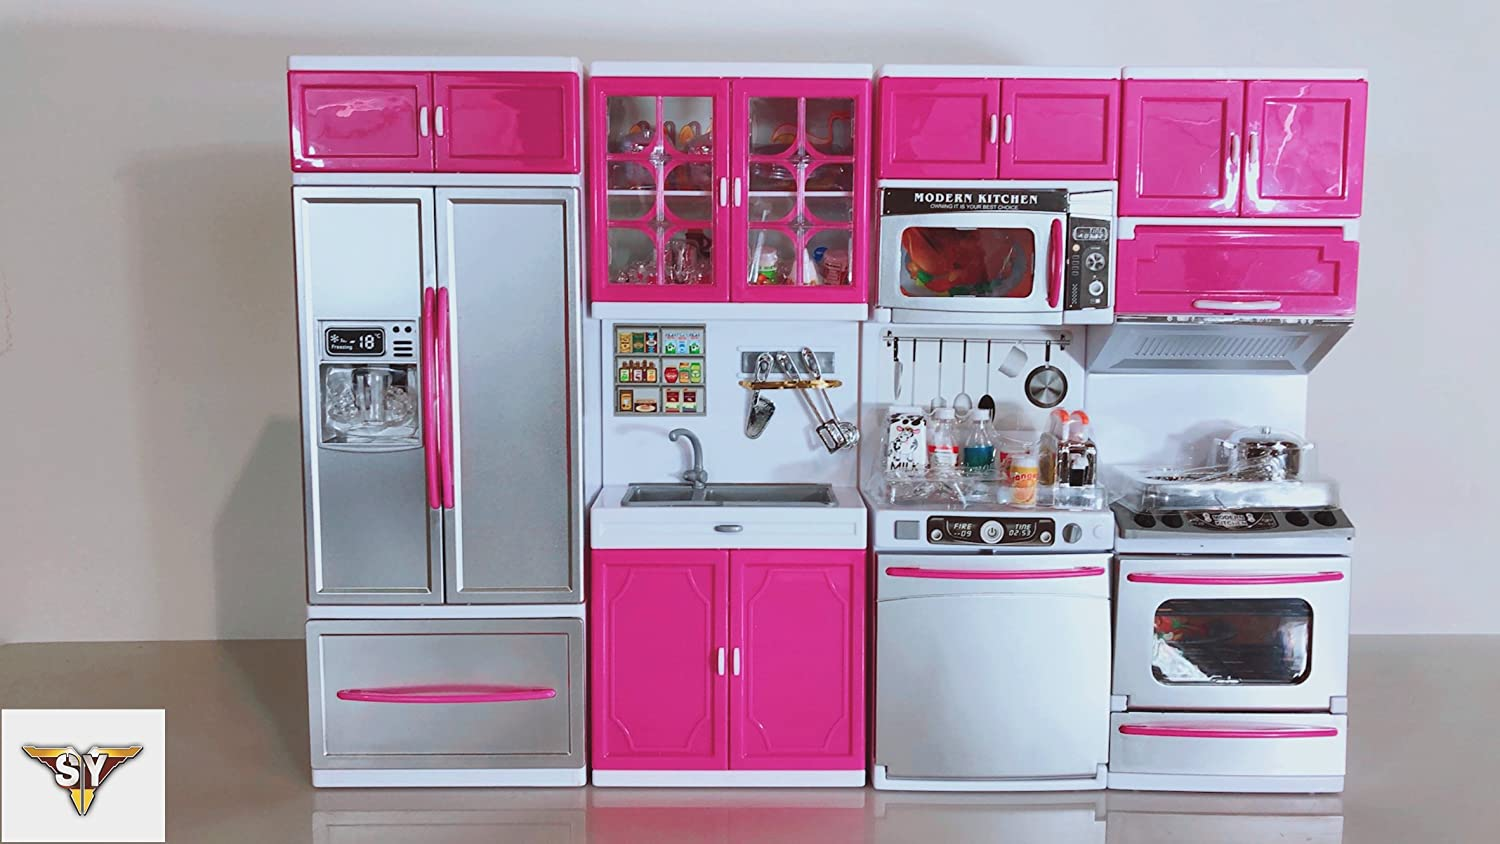 Buy sy doll playsets my modern kitchen full deluxe kit with lights and sounds4 set online at low prices in india amazon in